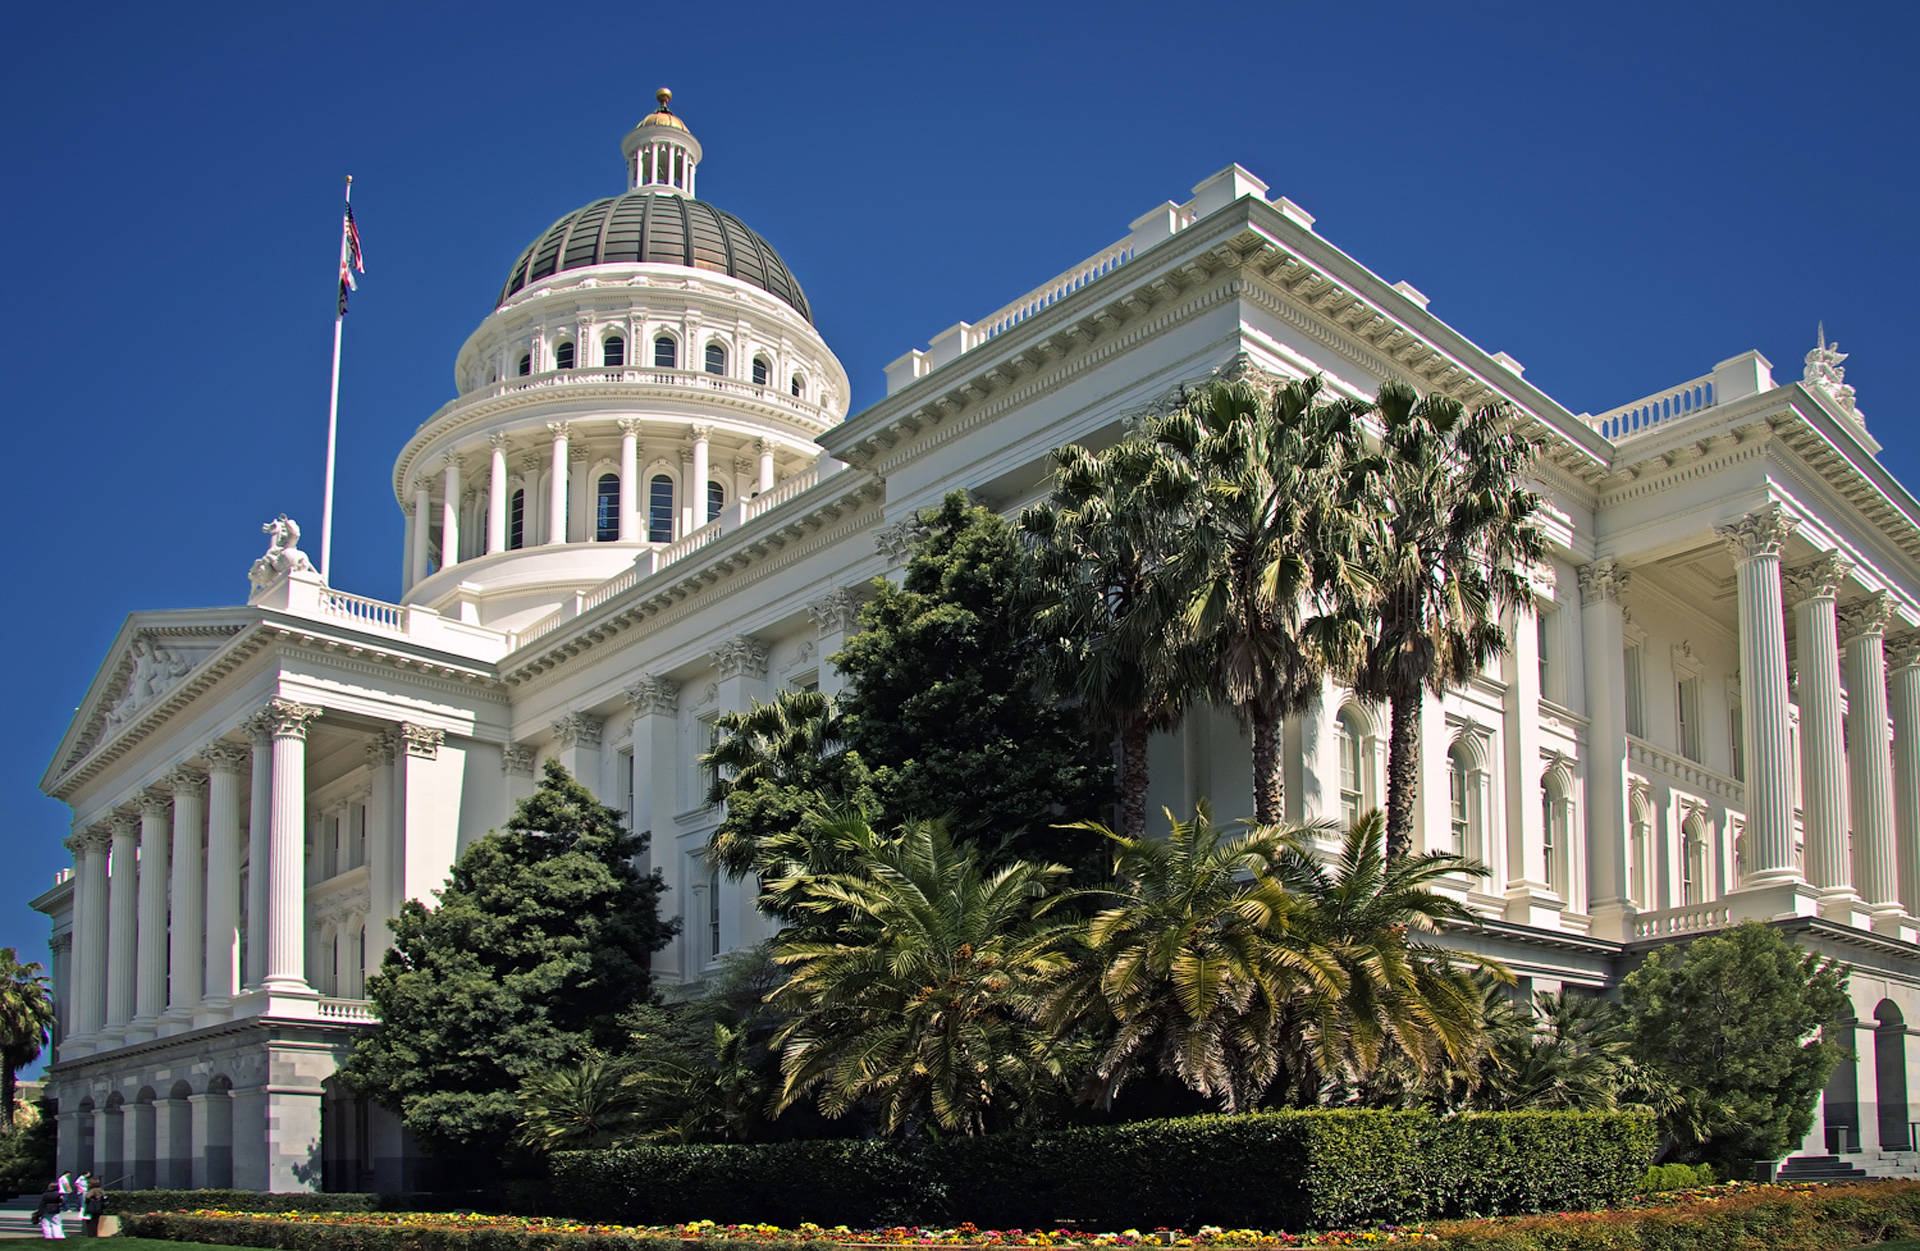 The state Capitol in Sacramento. Wikimedia Commons